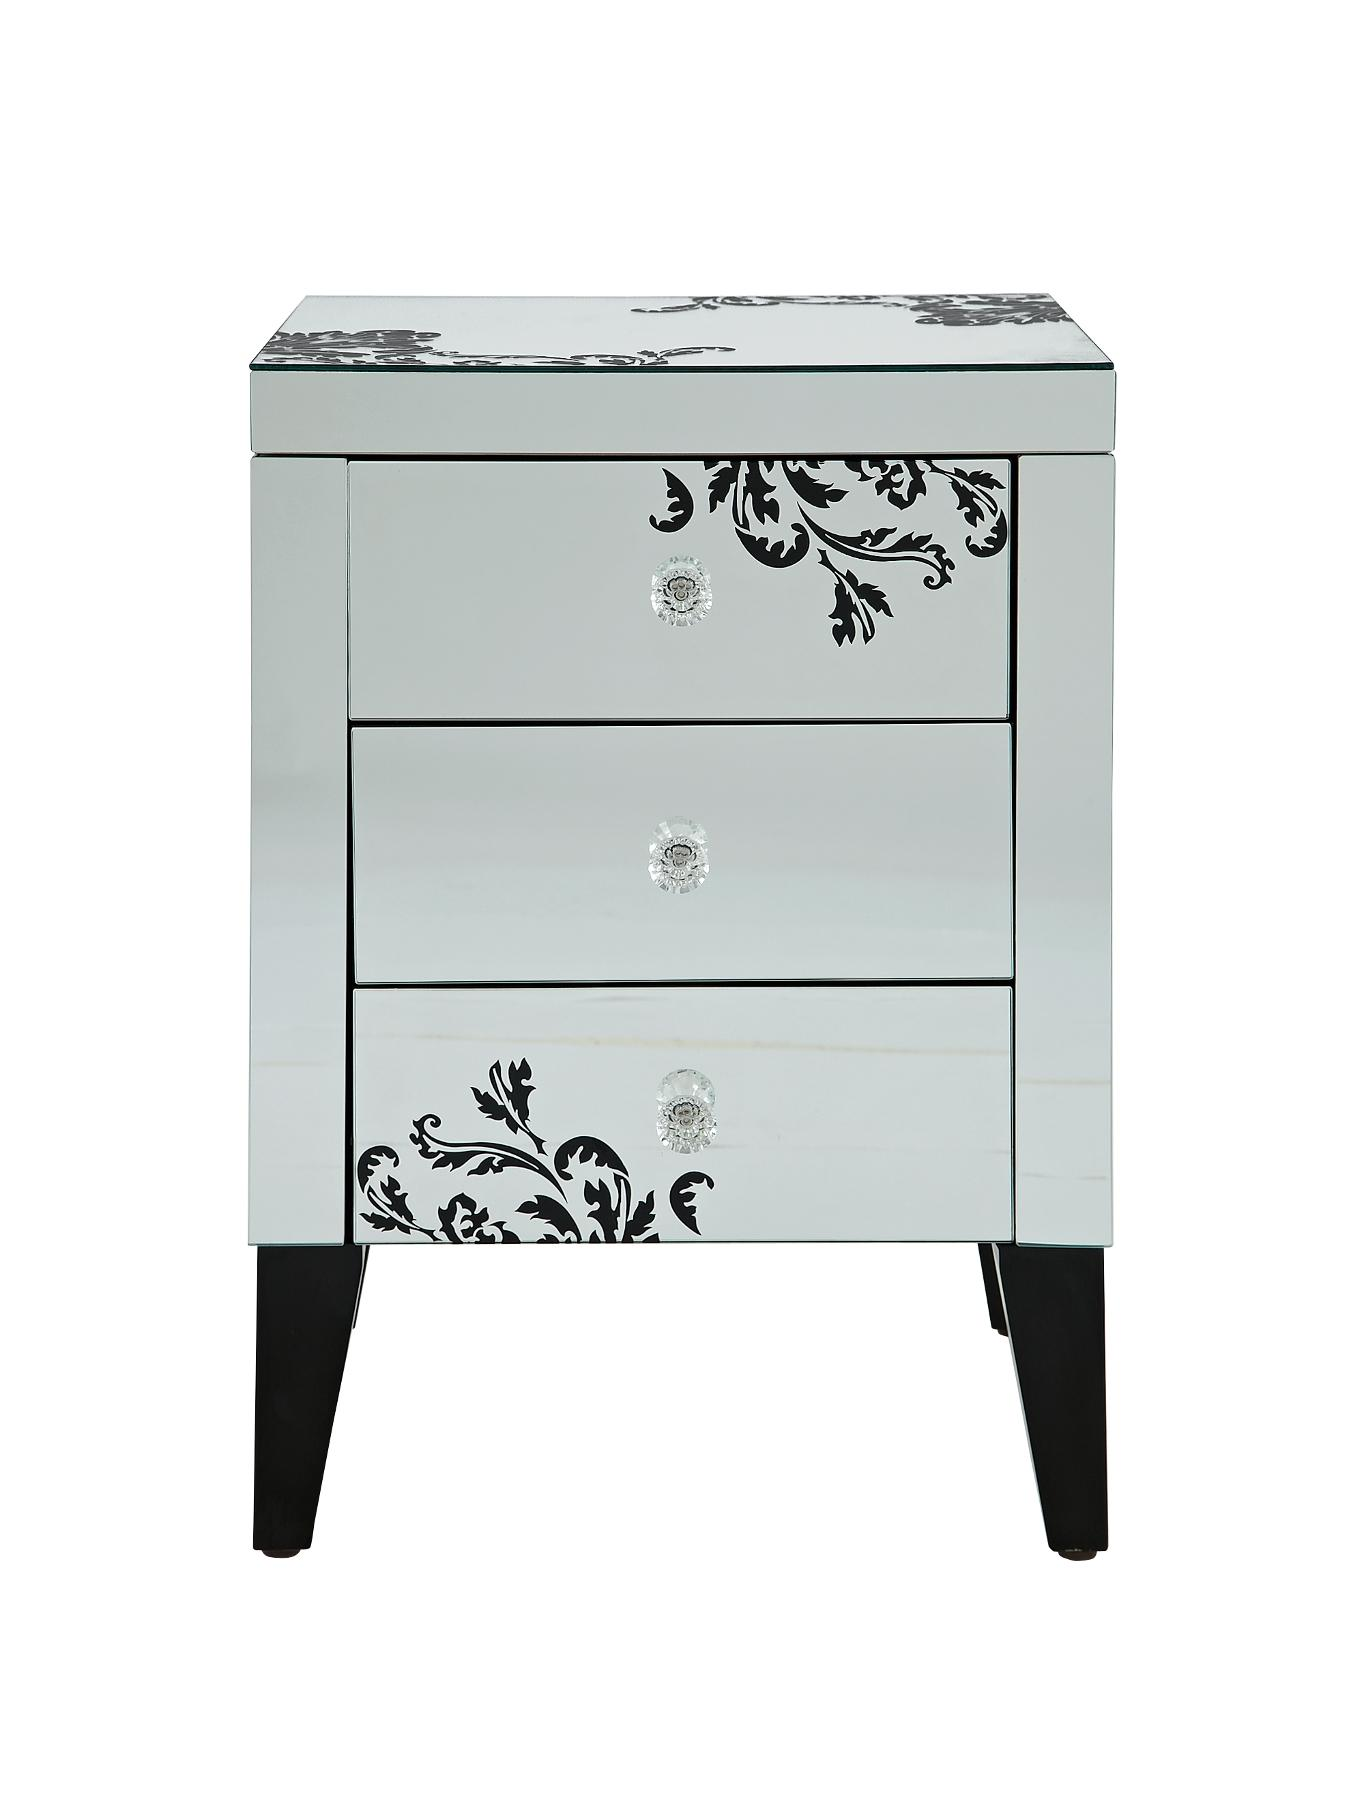 Scaramouche 3-Drawer Table, Silver,Bronze,Black